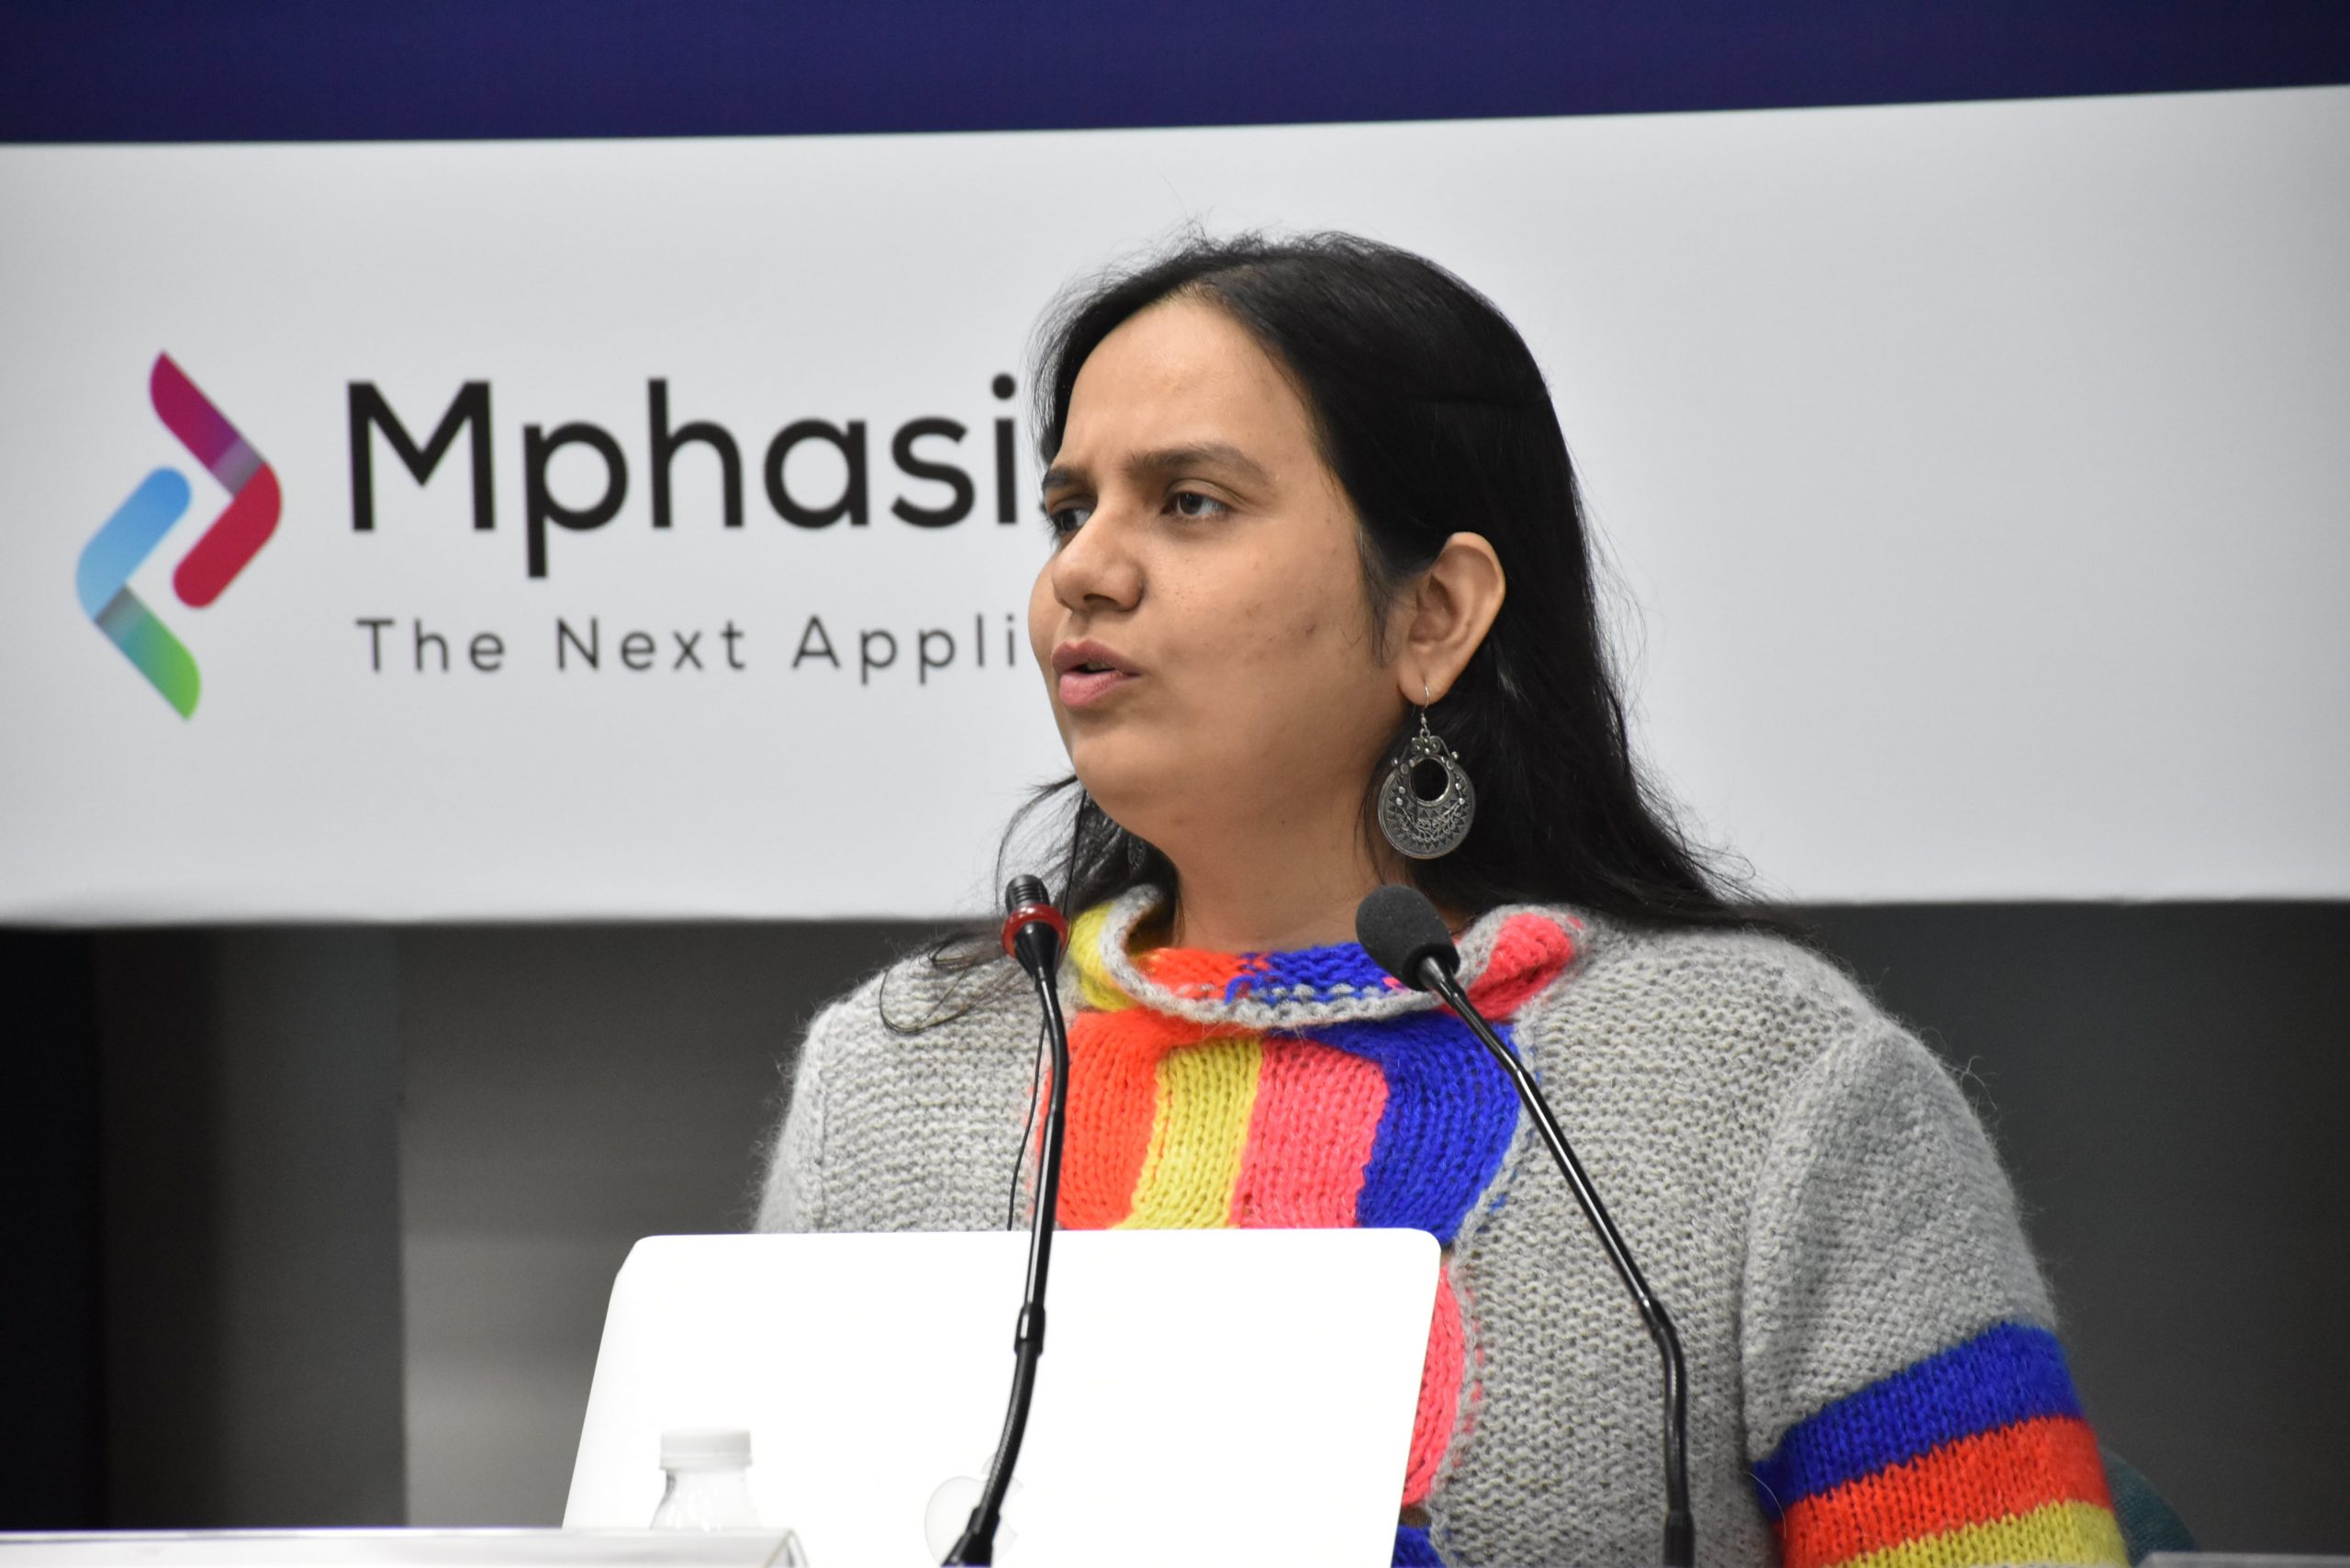 Nidhi goyal speaking. in front of her are two mics and a silver laptop. her hair is down and she is wearing a greu sweater with orange and blue stripes. behind her is a board that says mphasis